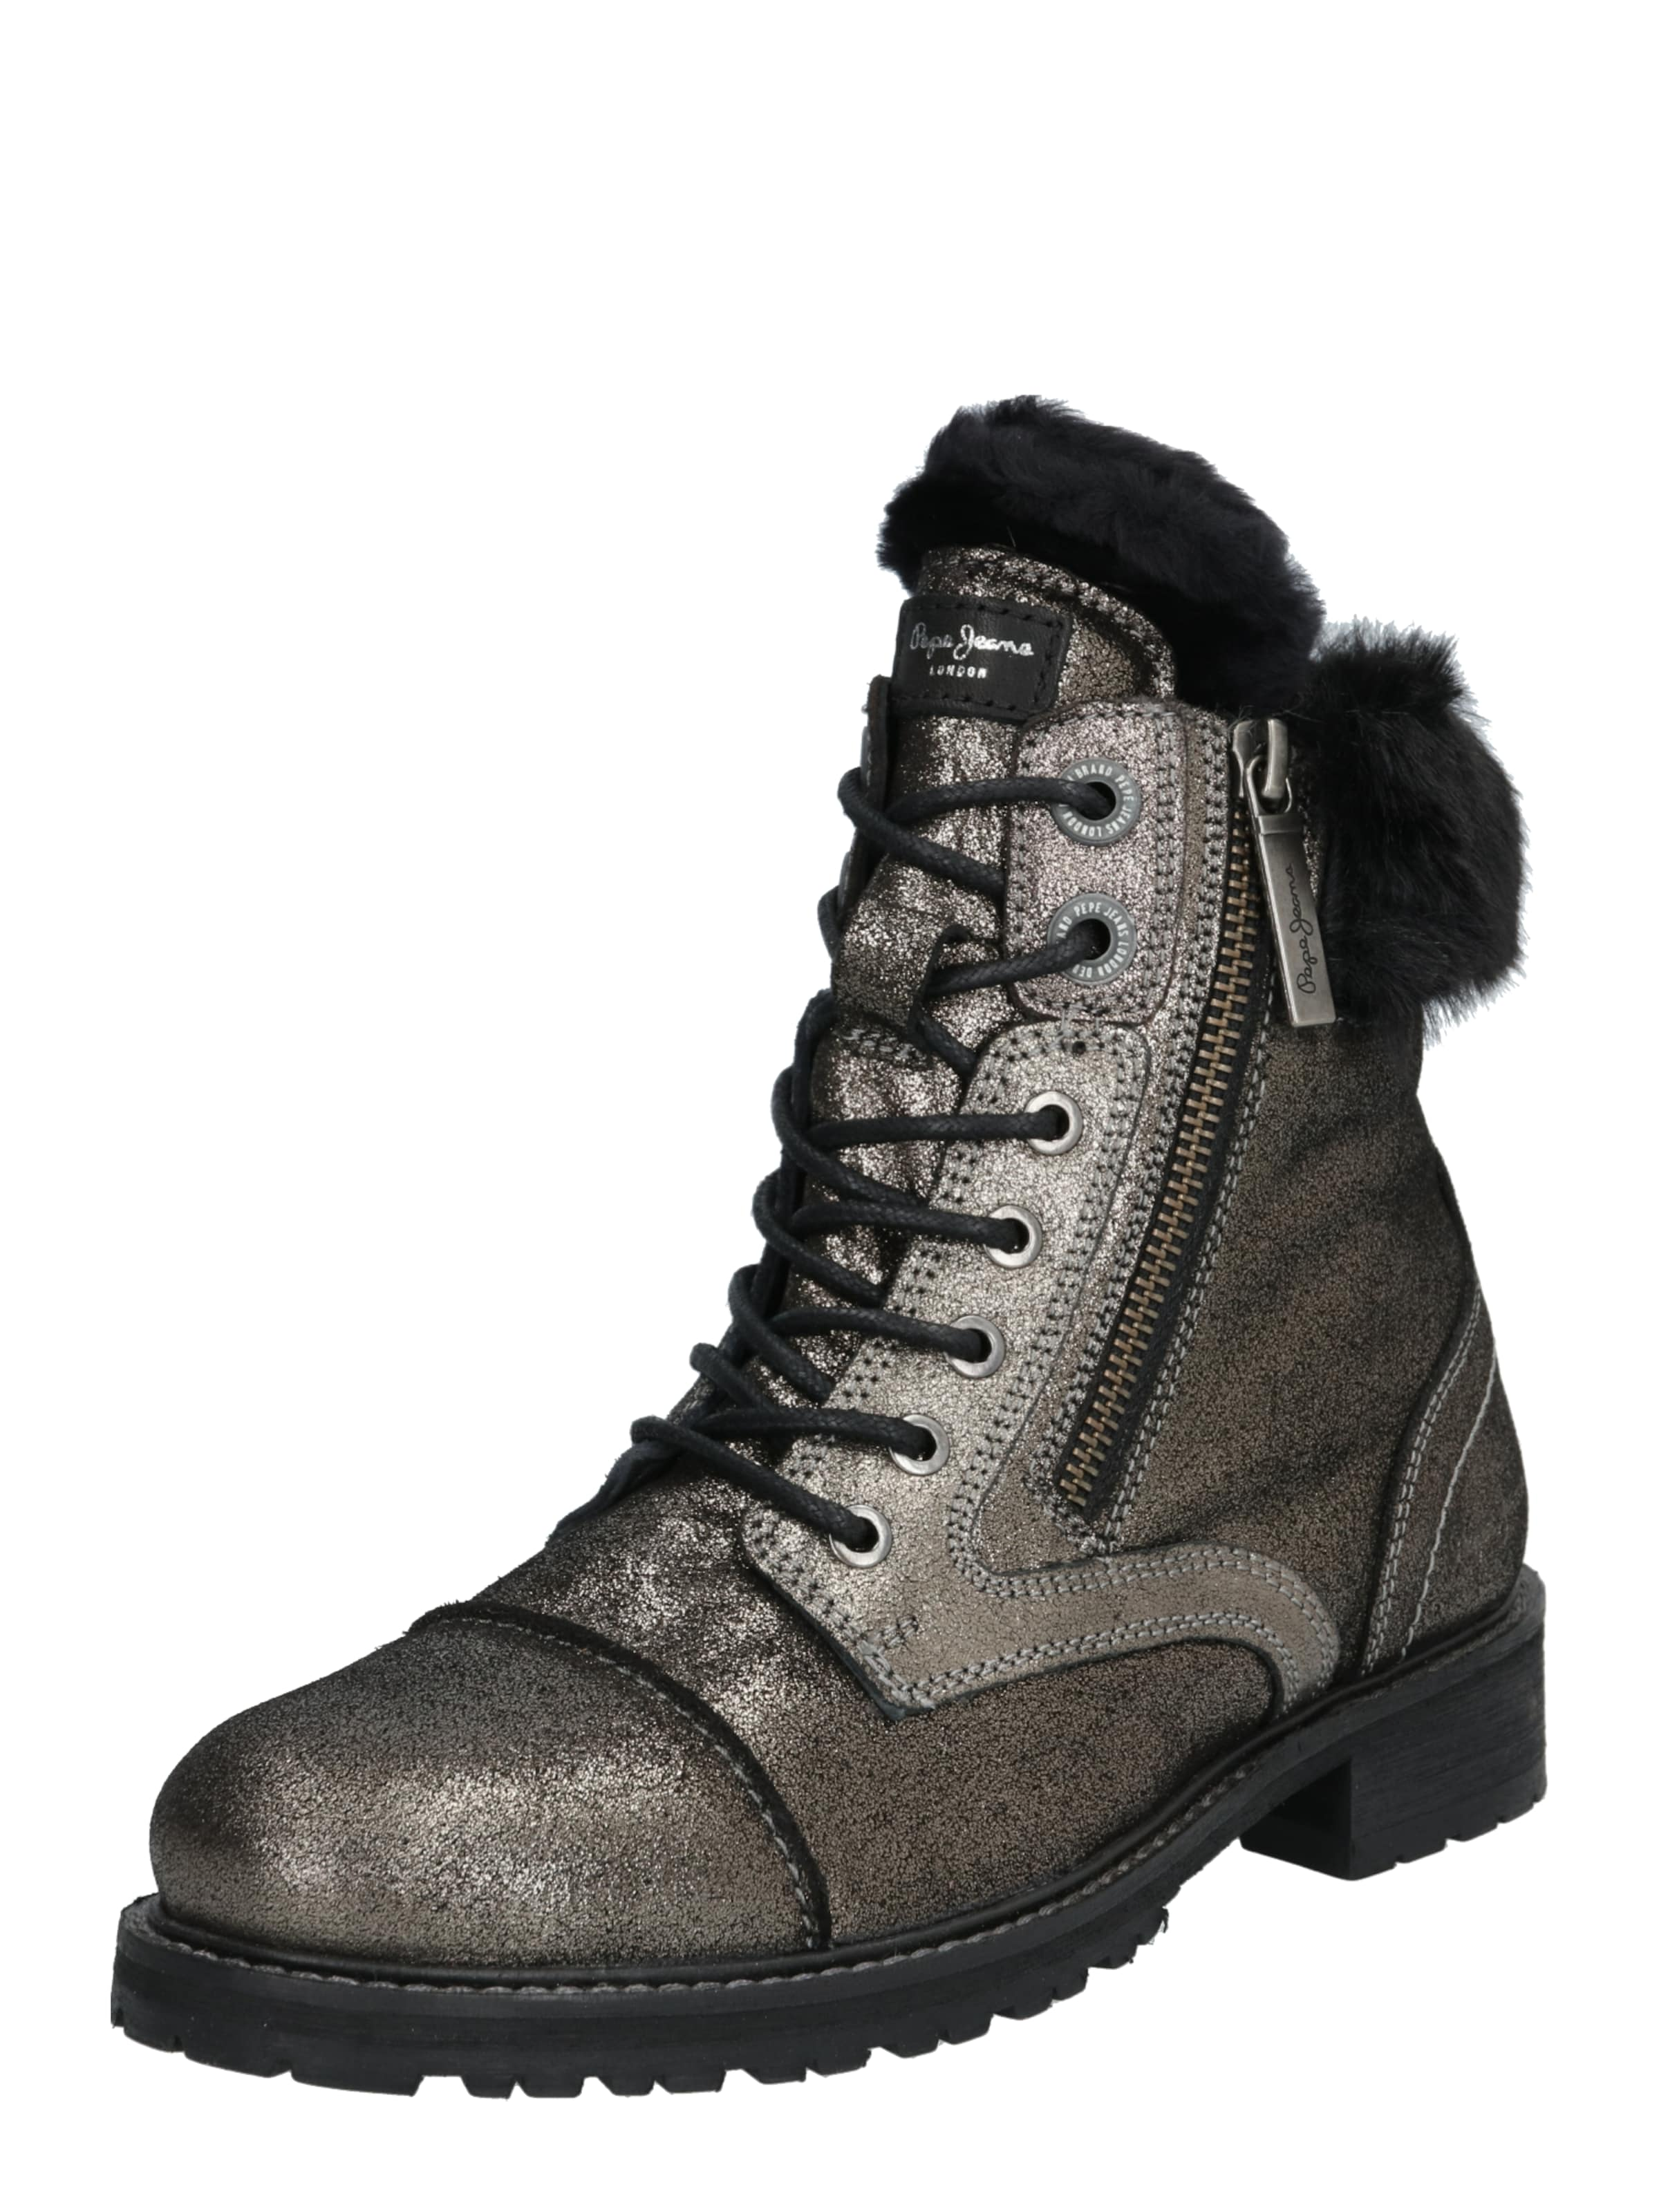 Pepe Jeans Stiefel 'melting bling' in silber